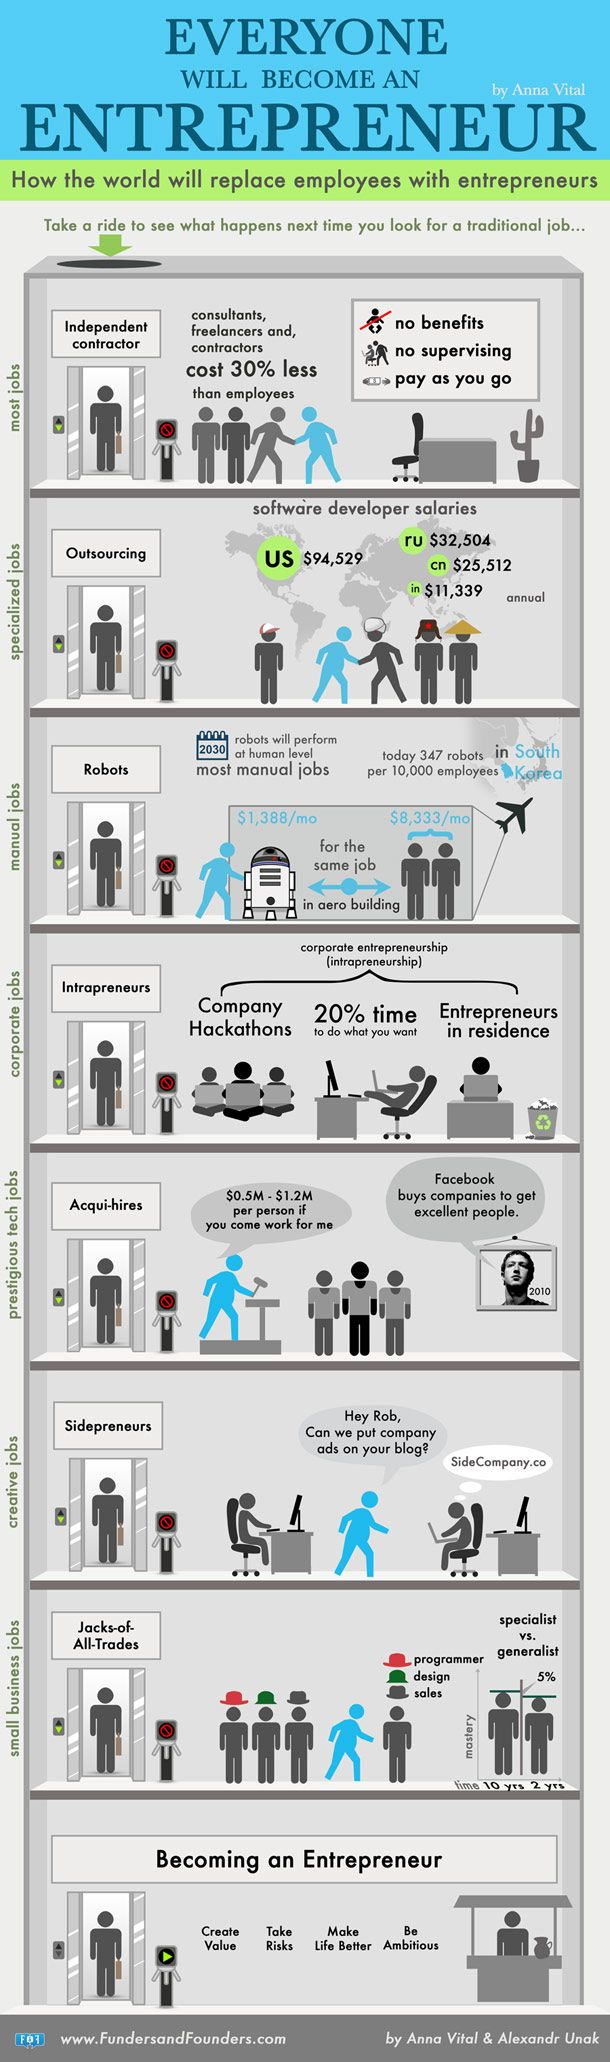 Why Everyone Will Have to Become an Entrepreneur (Infographic) | Entrepreneur.com